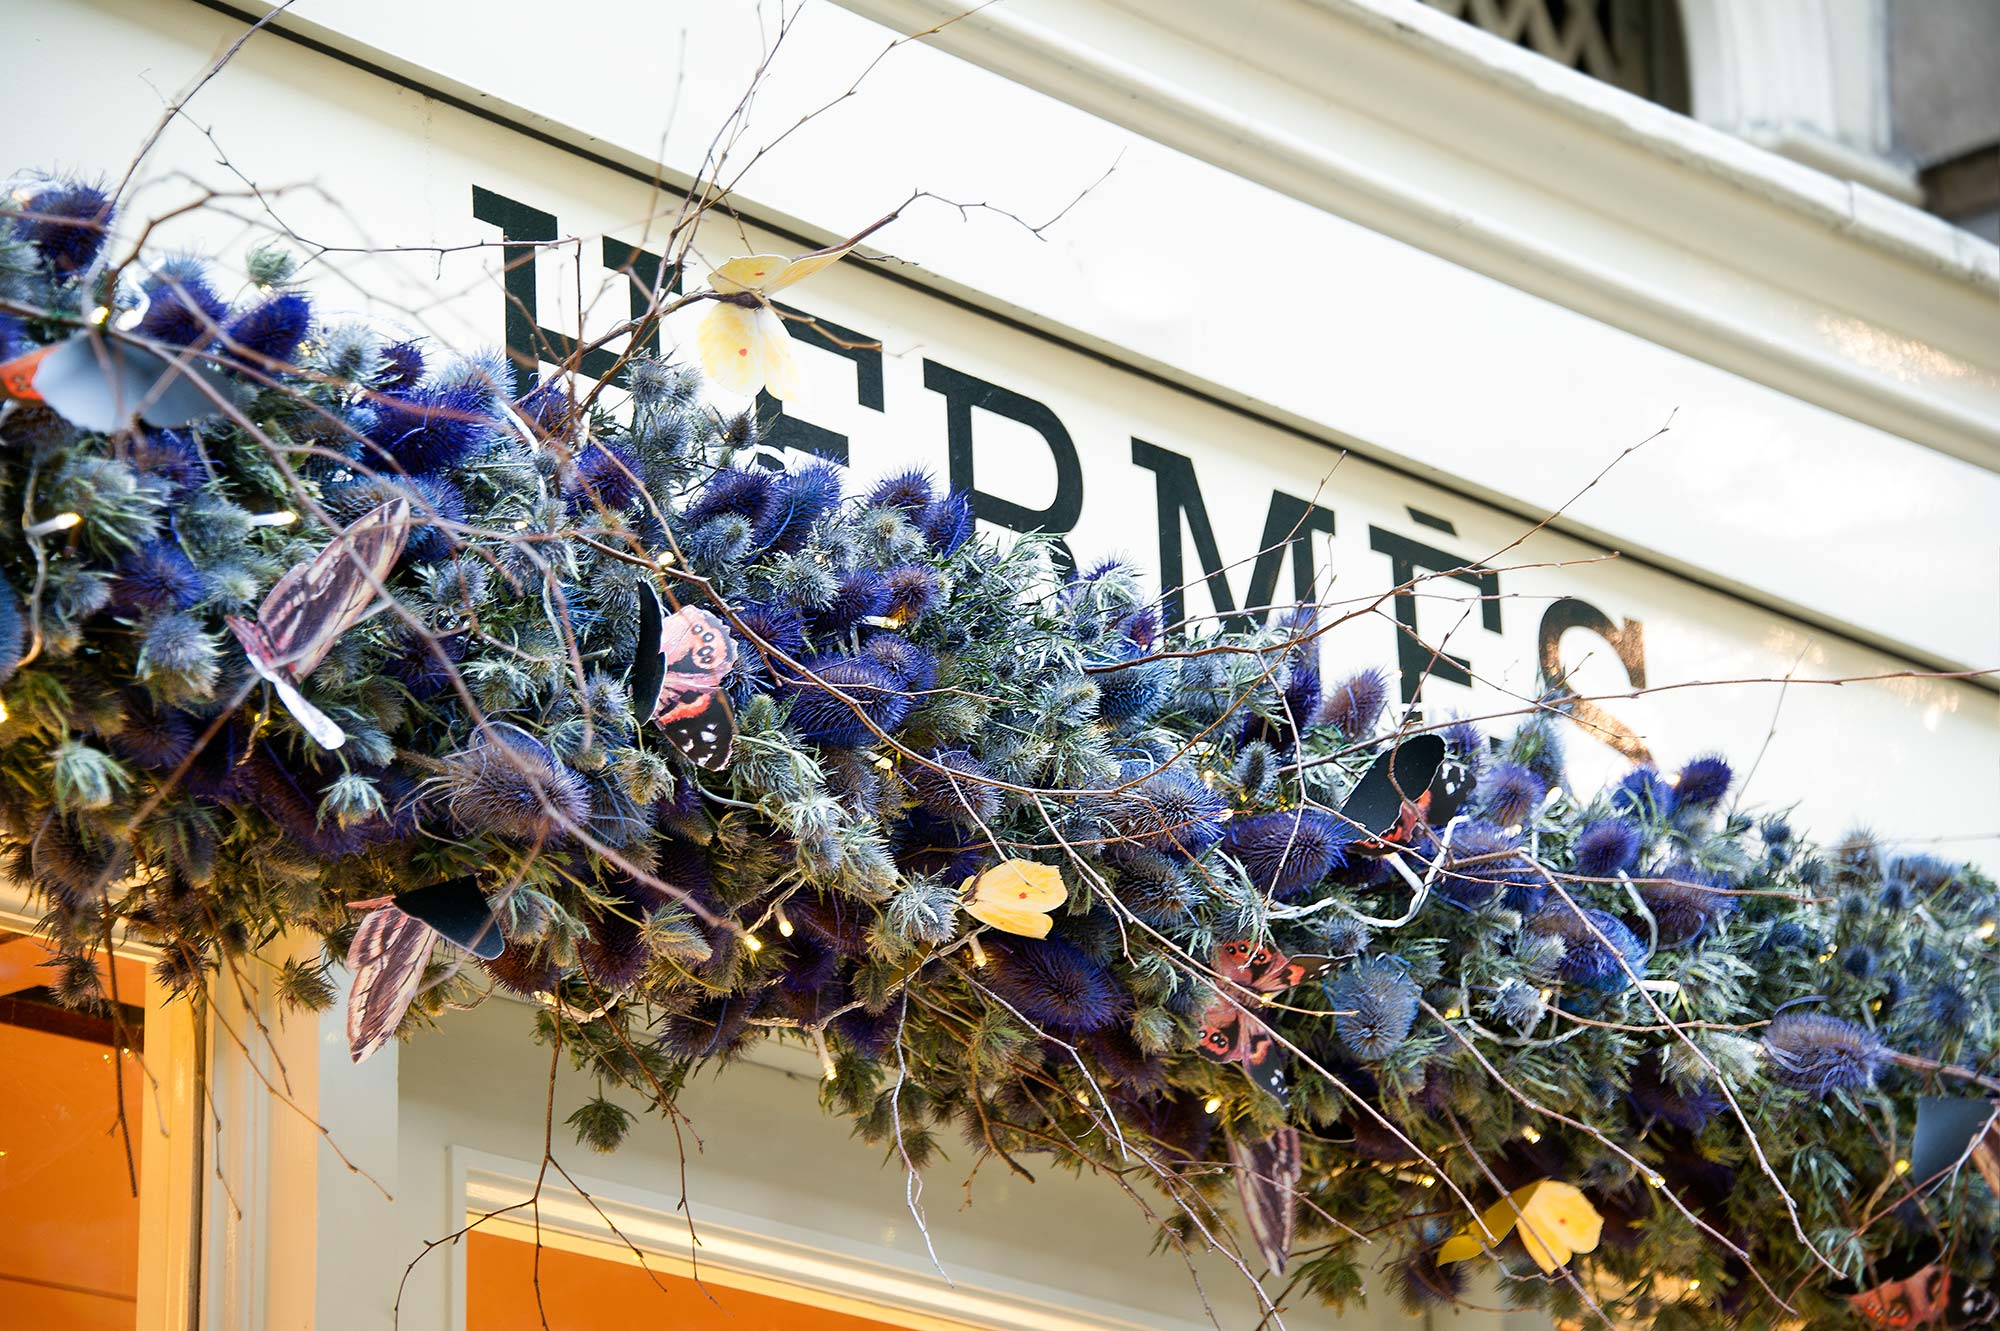 HERMES LONDON STORES